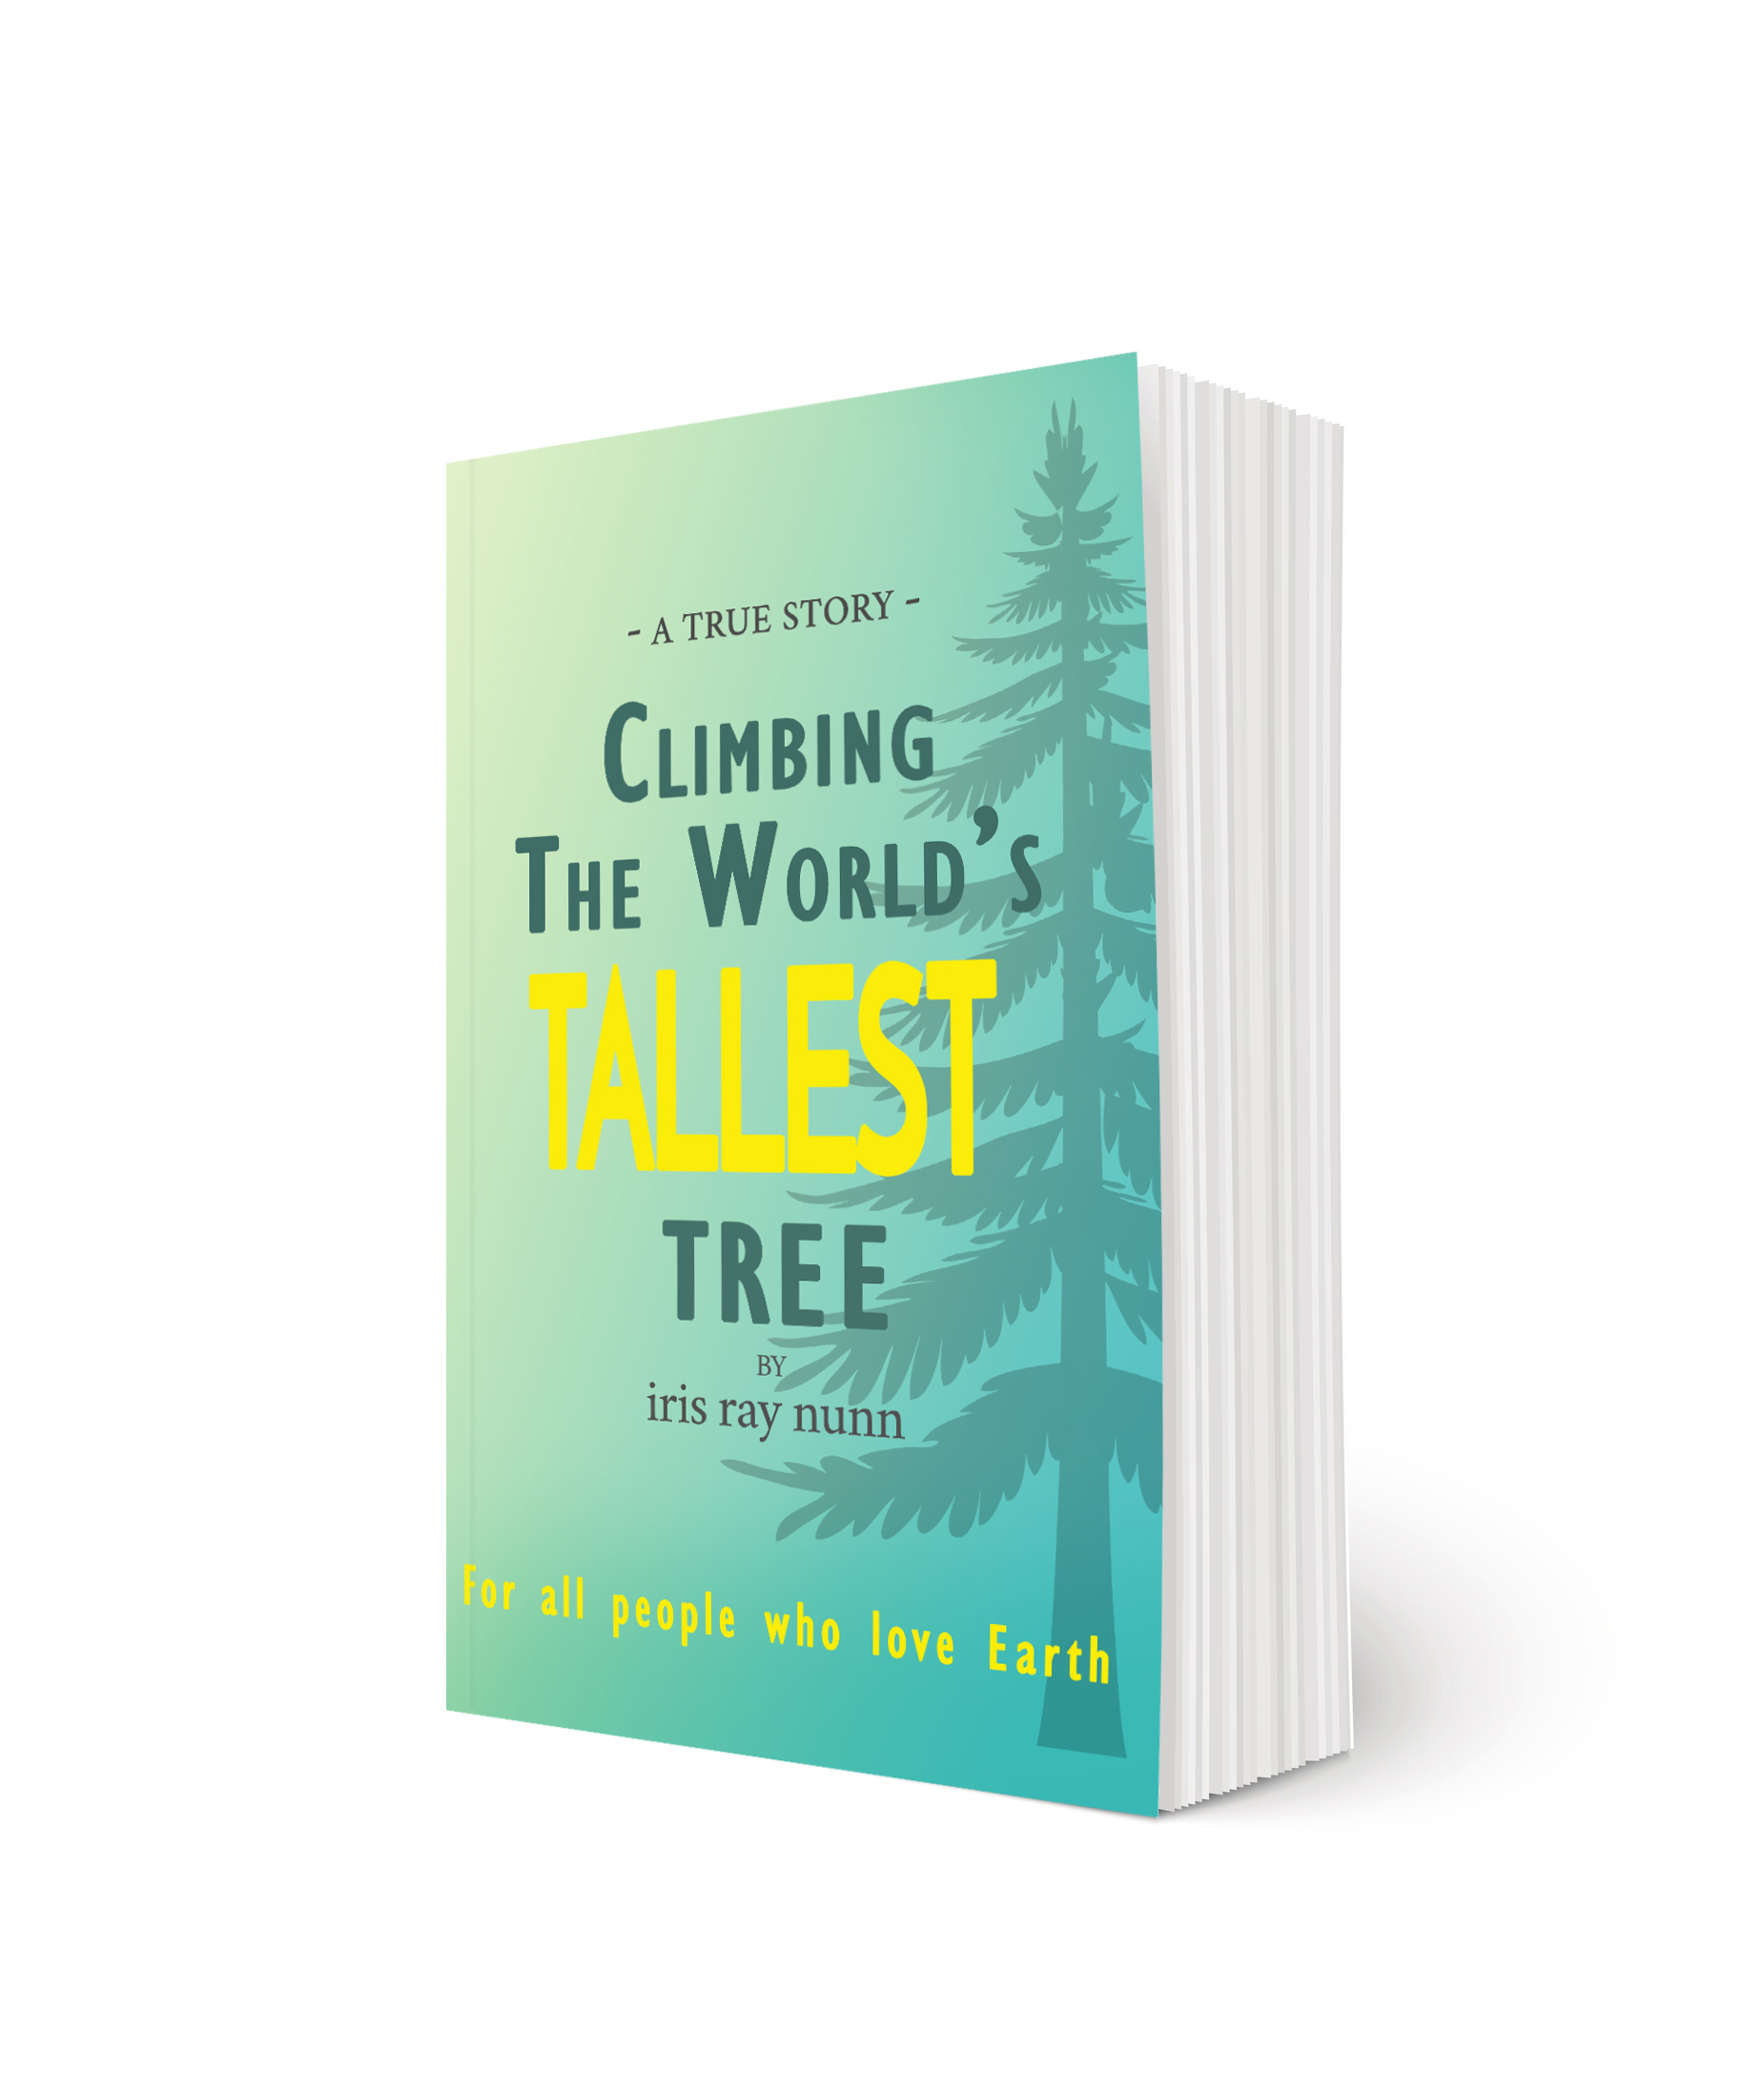 Climbing the Worlds Tallest Tree book